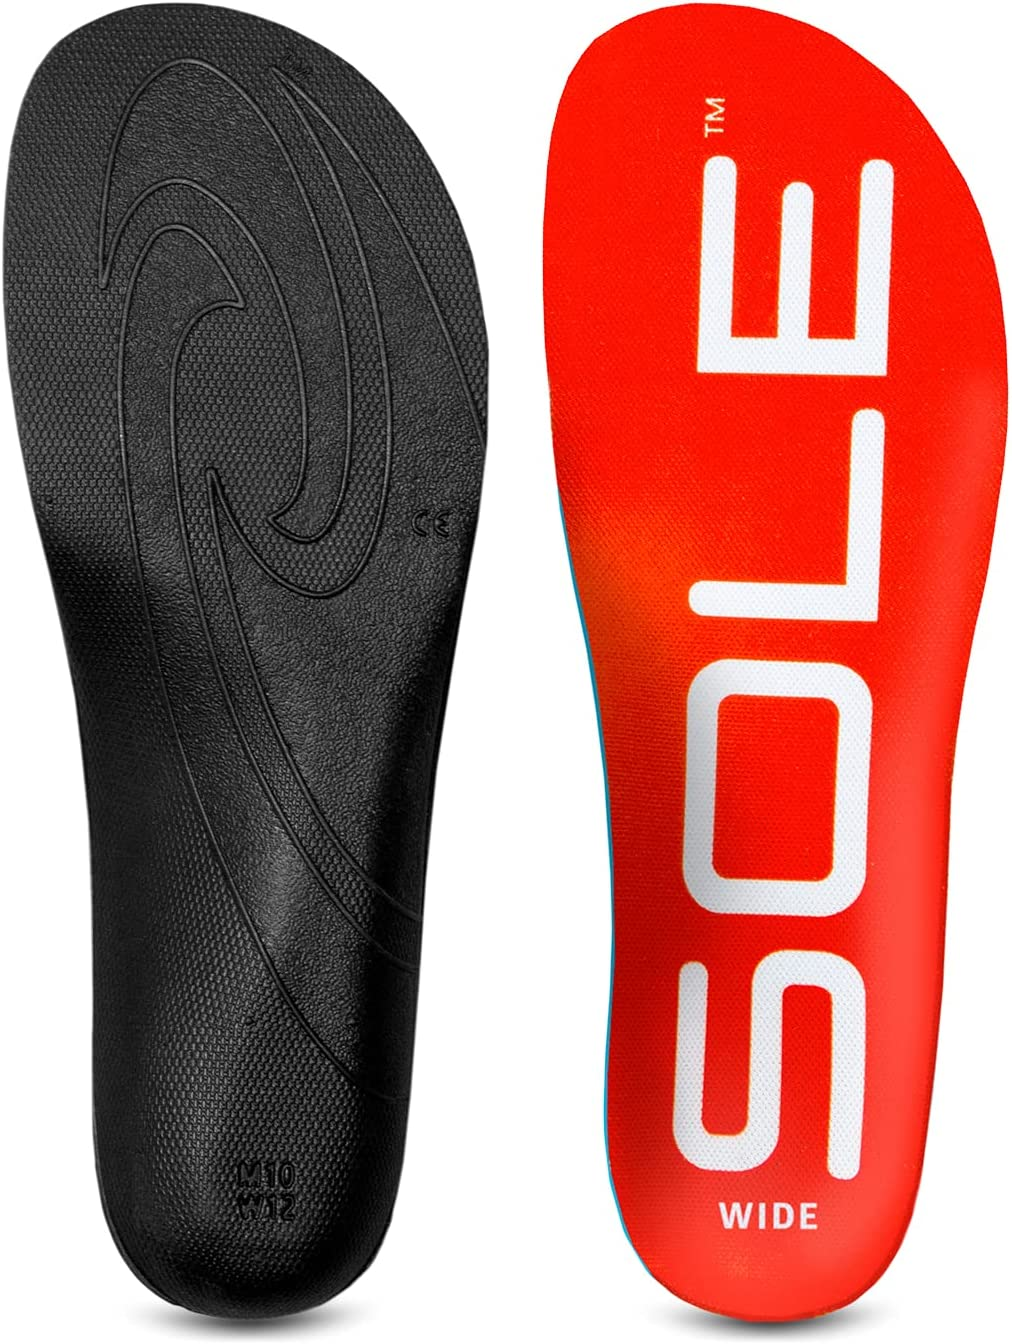 SOLE Active Wide Medium Insole Women's Tampa Mall 13.5-14 11.5-12 Special price Men's